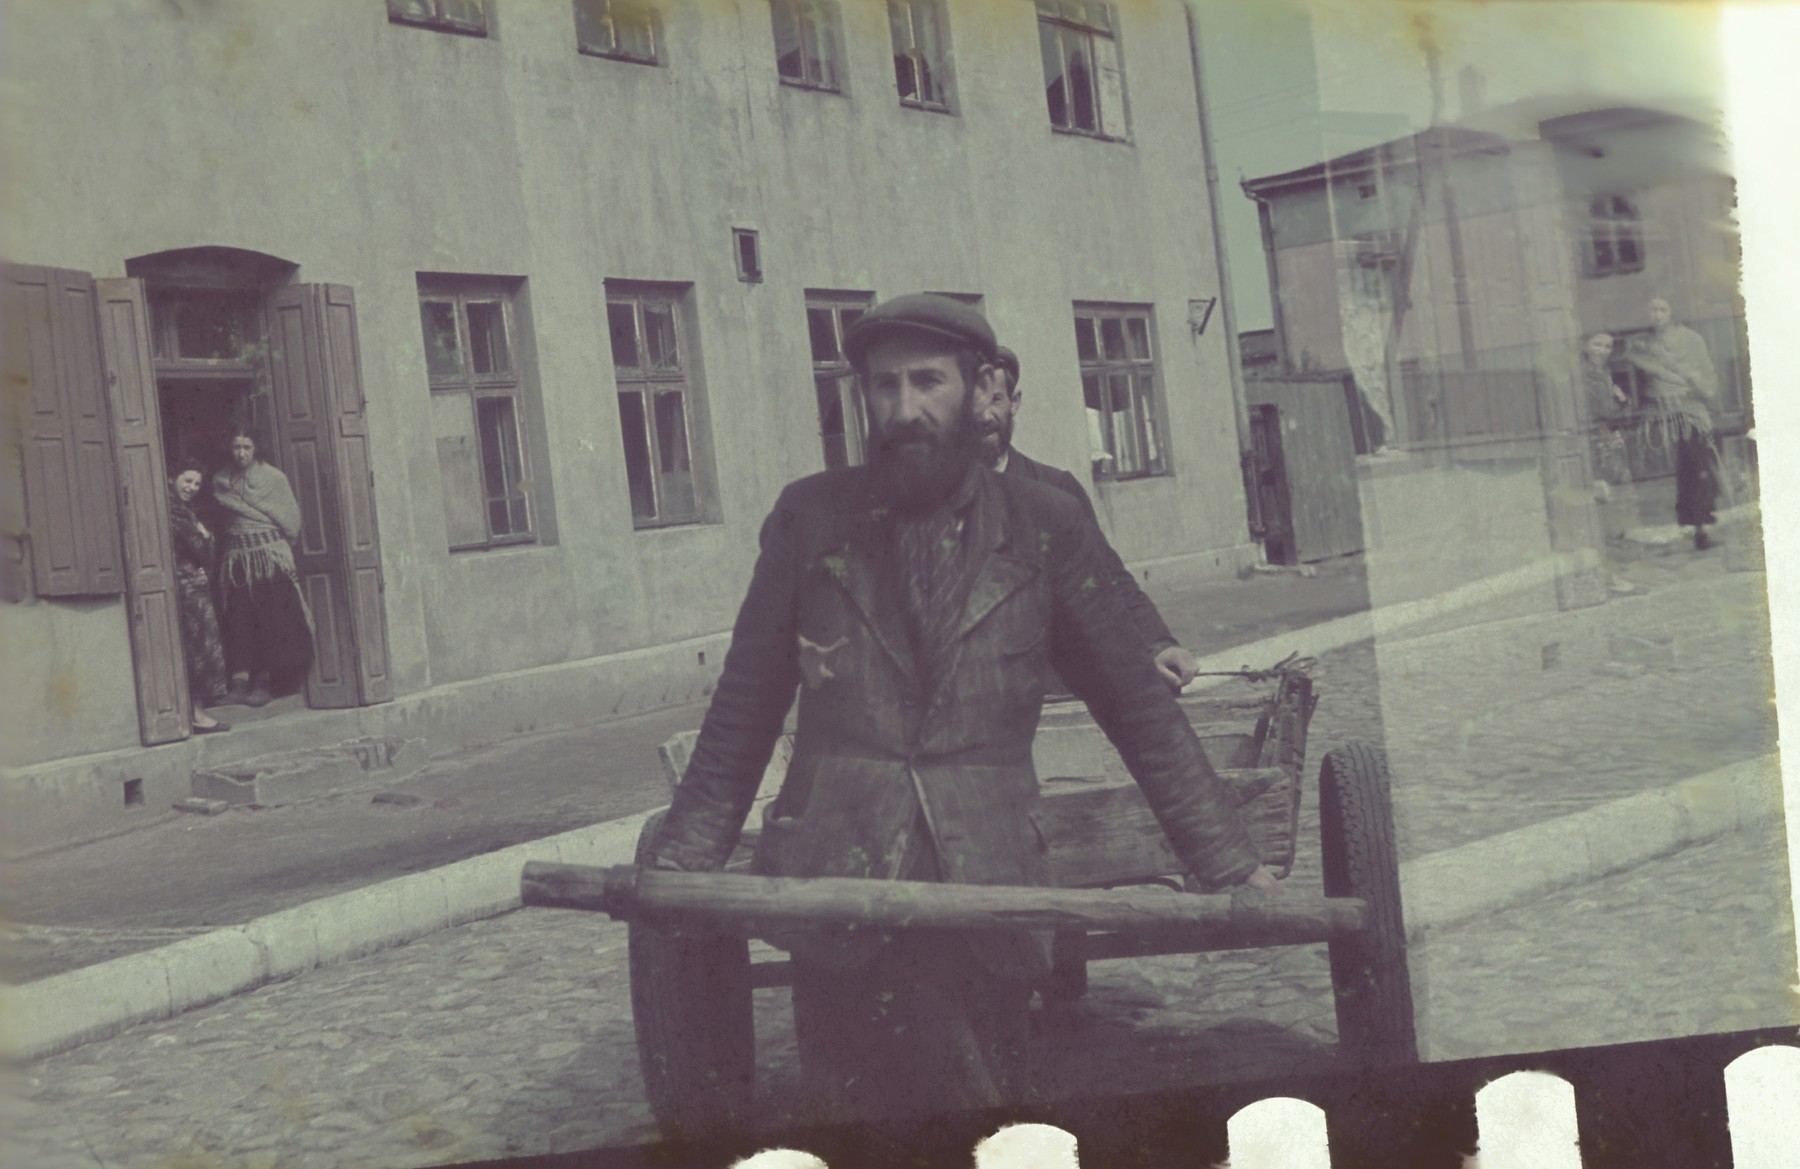 A bearded member of the transportation crew pulls a wooden cart through a street of the Lodz ghetto.